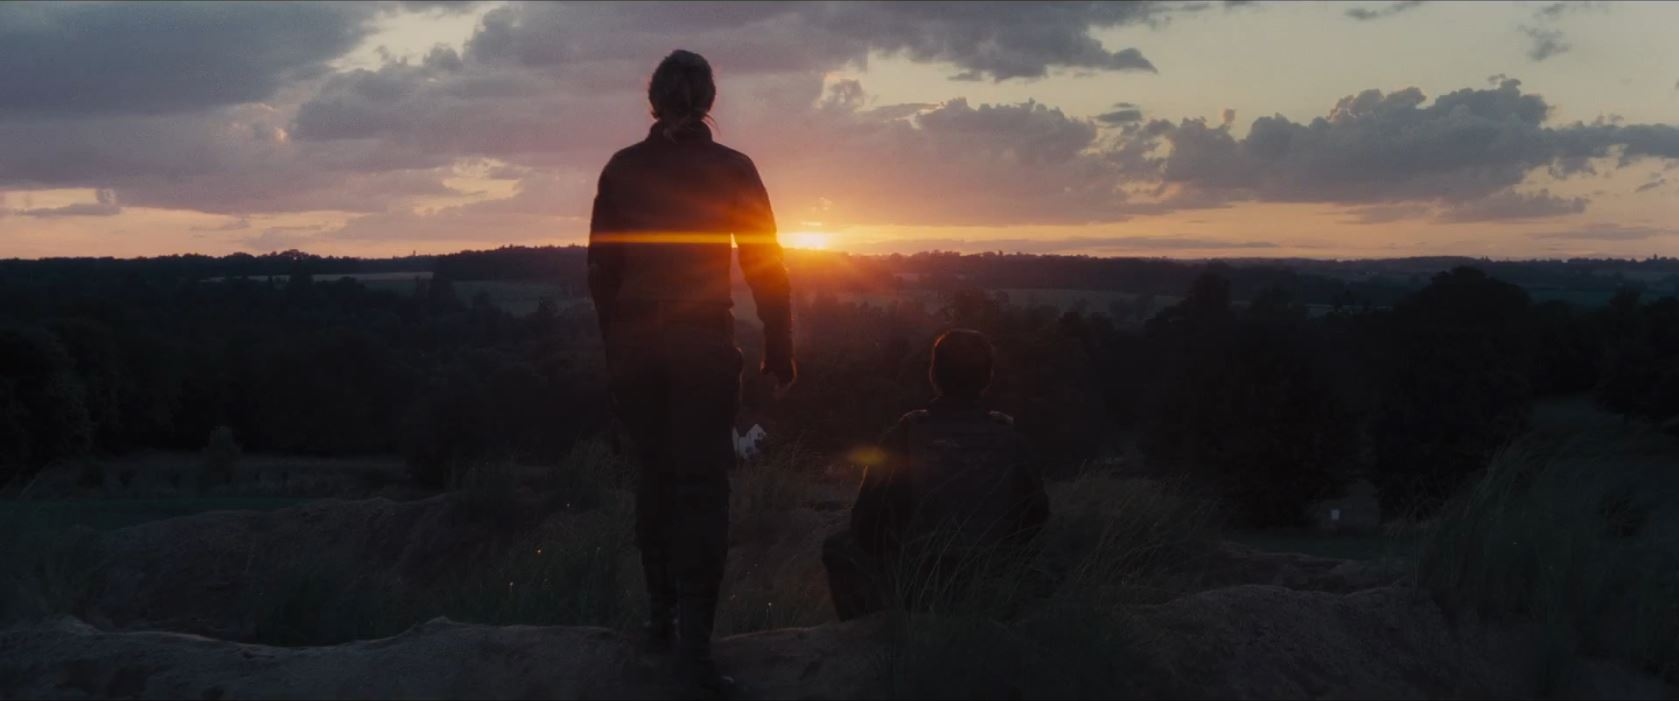 Edge of Tomorrow - Tom Cruise and Emily Blunt see sunset